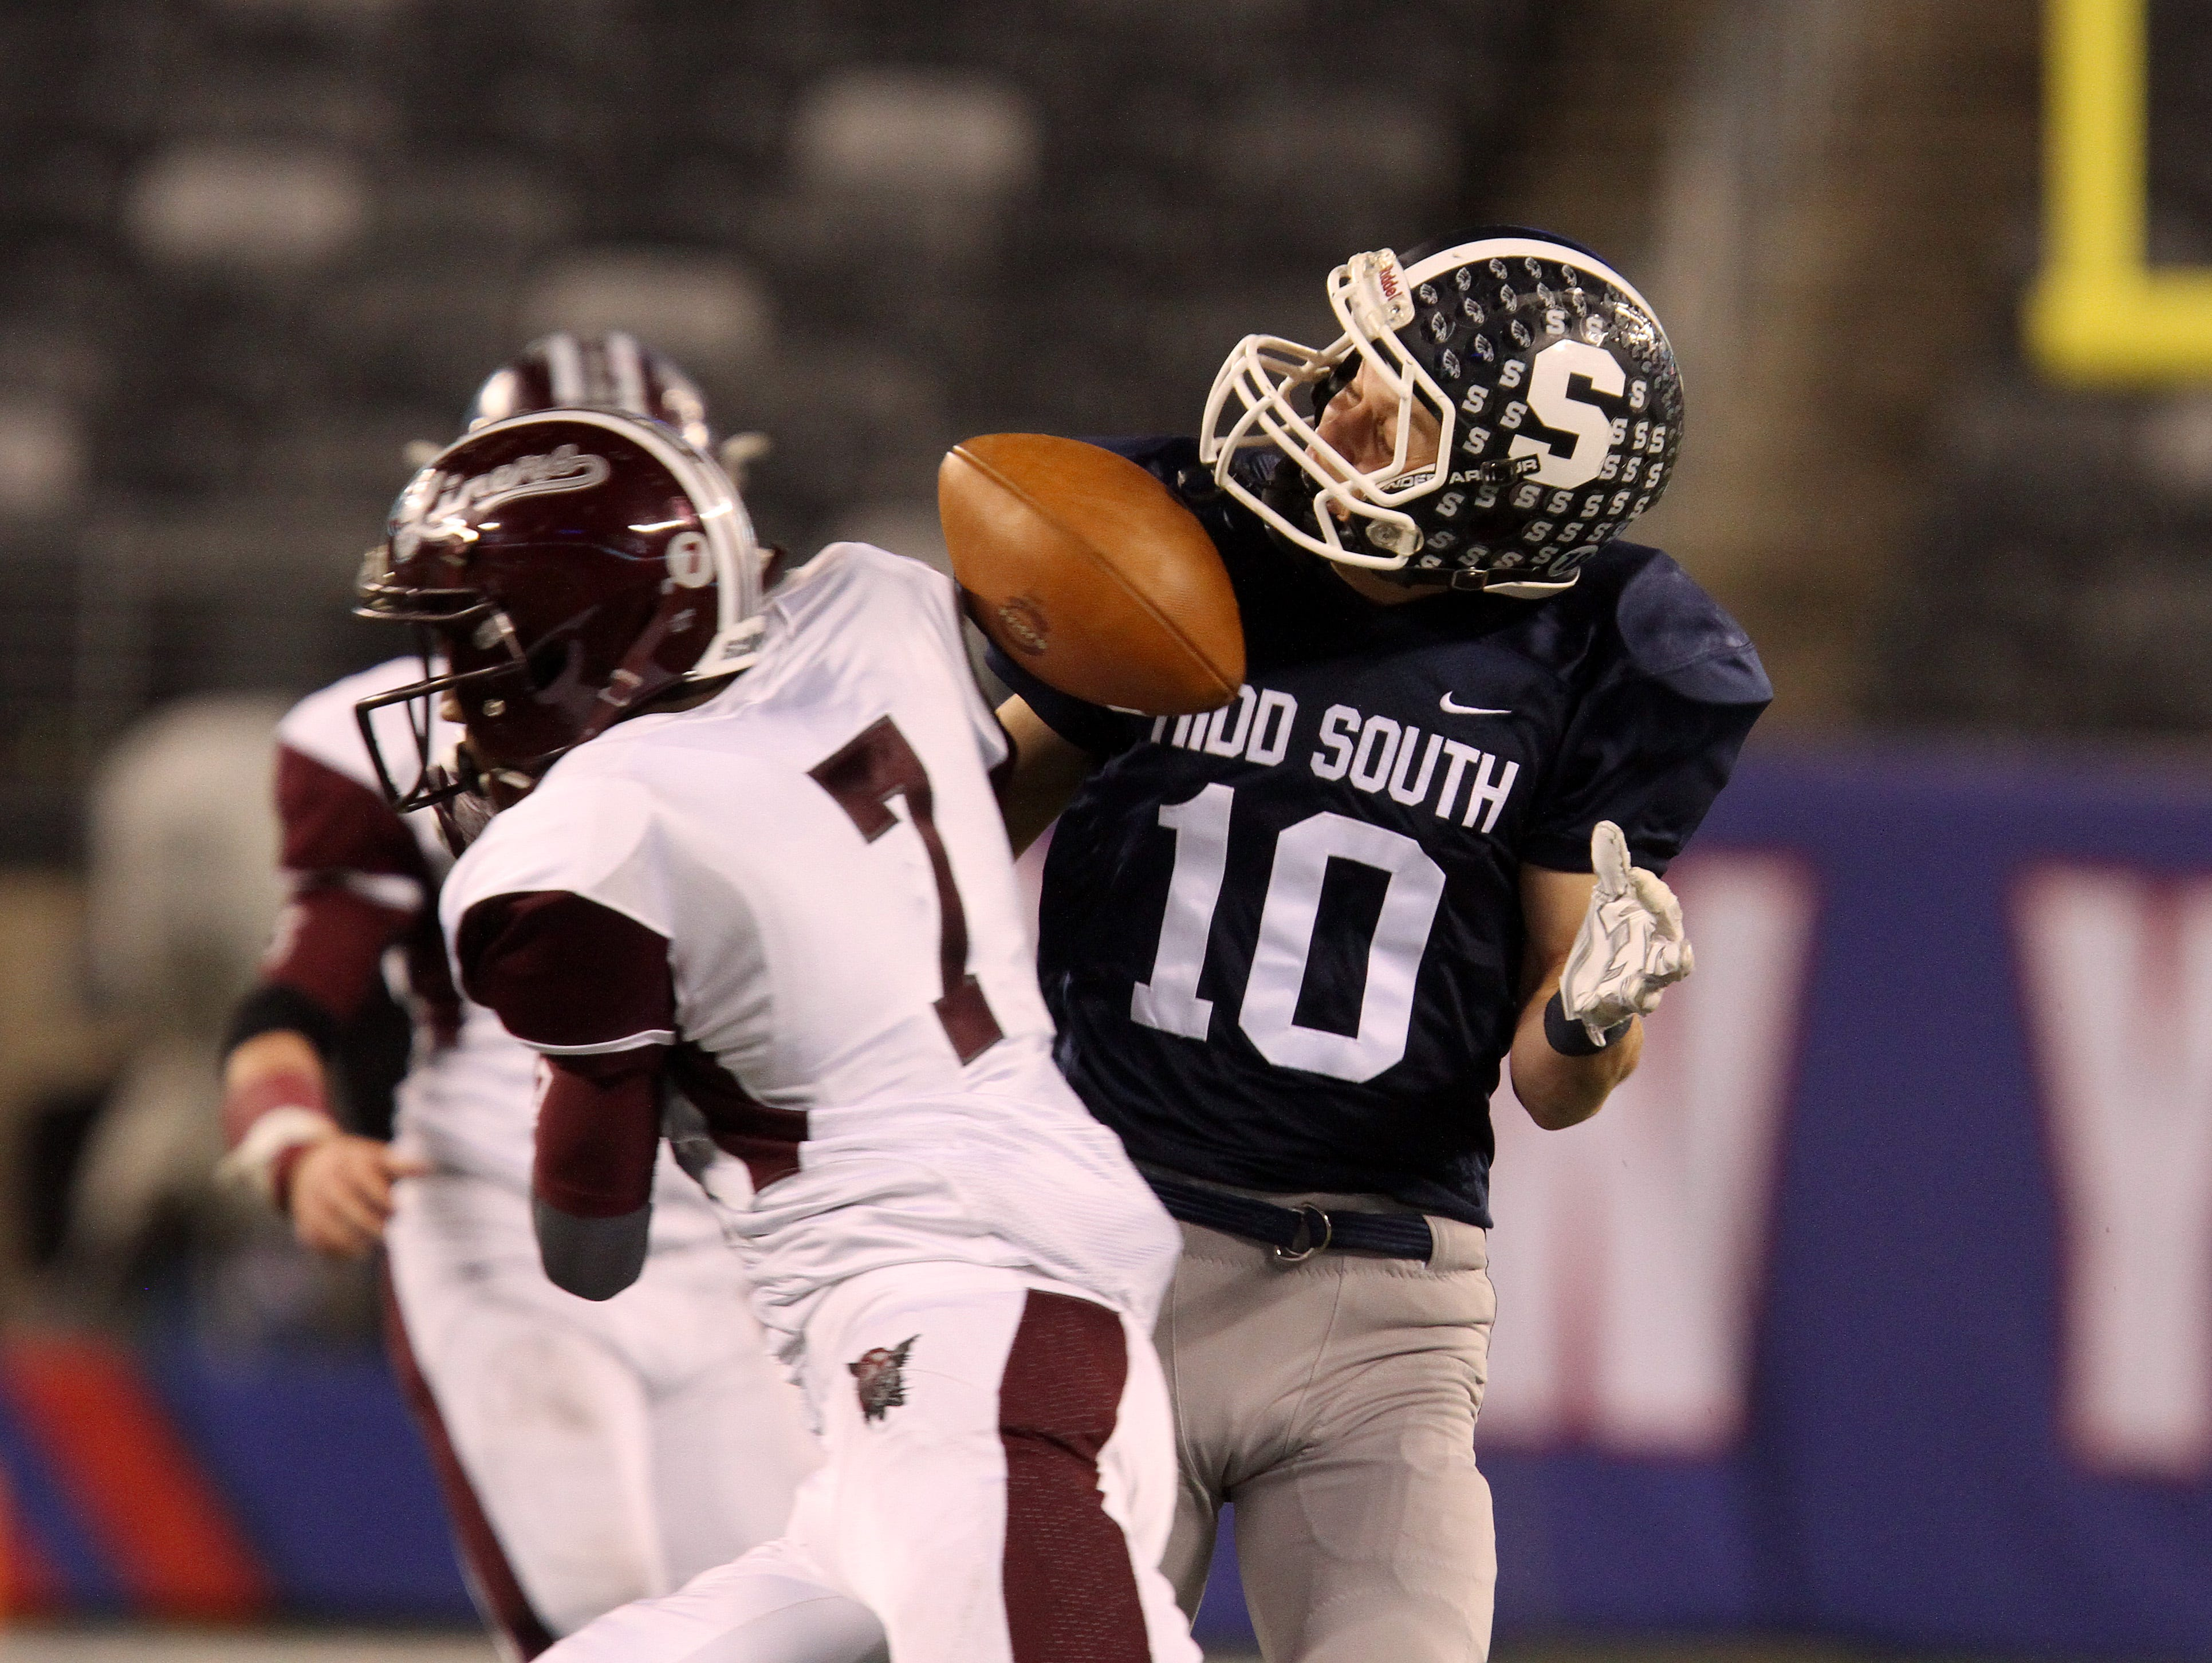 Middletown South's #10 Jeff Lewandowski misses a pass with Phillipsburg High School's #7 Jayshawn Grant challenging him during second half of the North 2 Group IV game of the 2015 NJSIAA/MetLife Stadium High School Football Championships at MetLife Stadium in East Rutherford, NJ Saturday December 5, 2015.